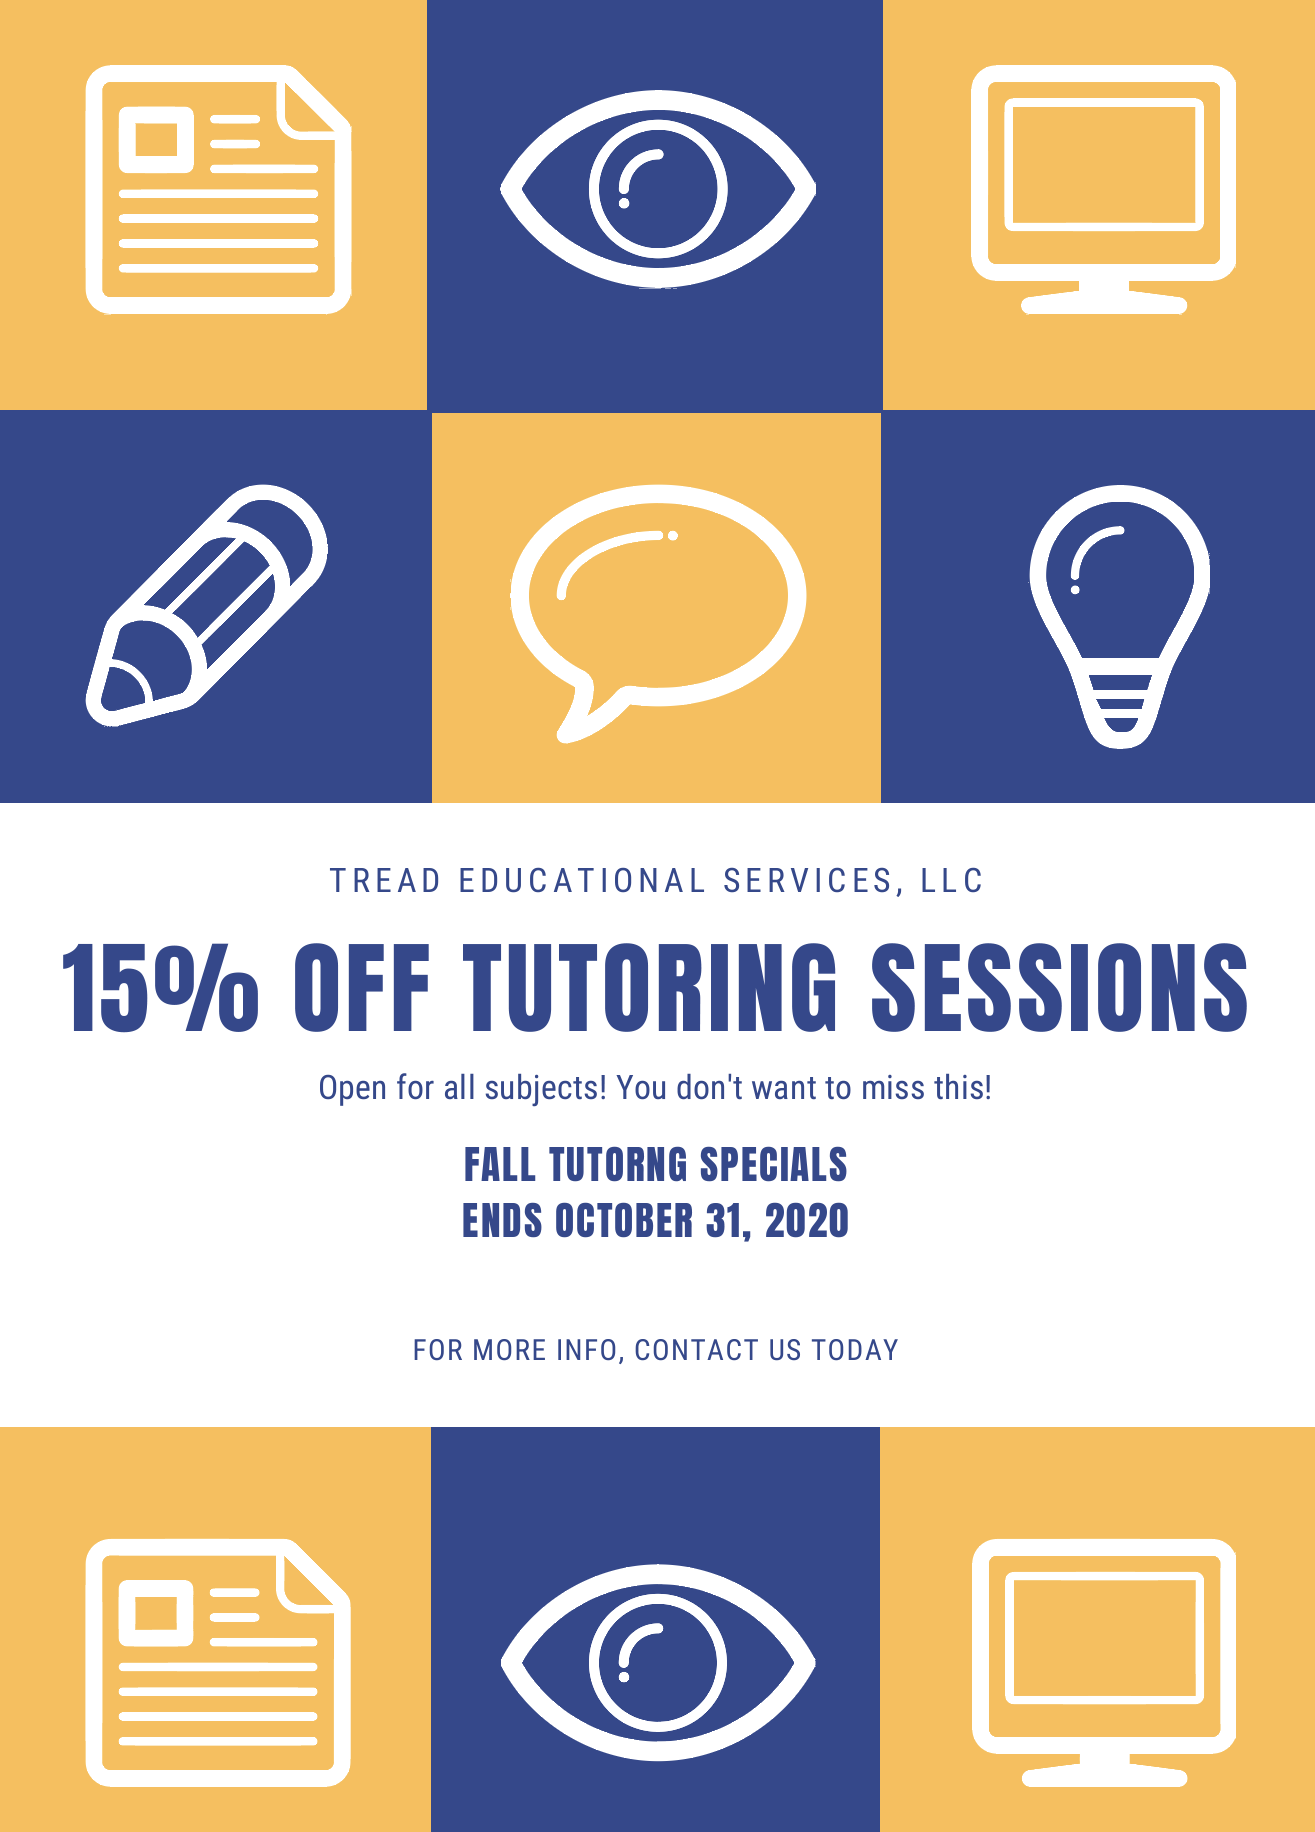 Fall Tutoring Special at TREAD Educational Services